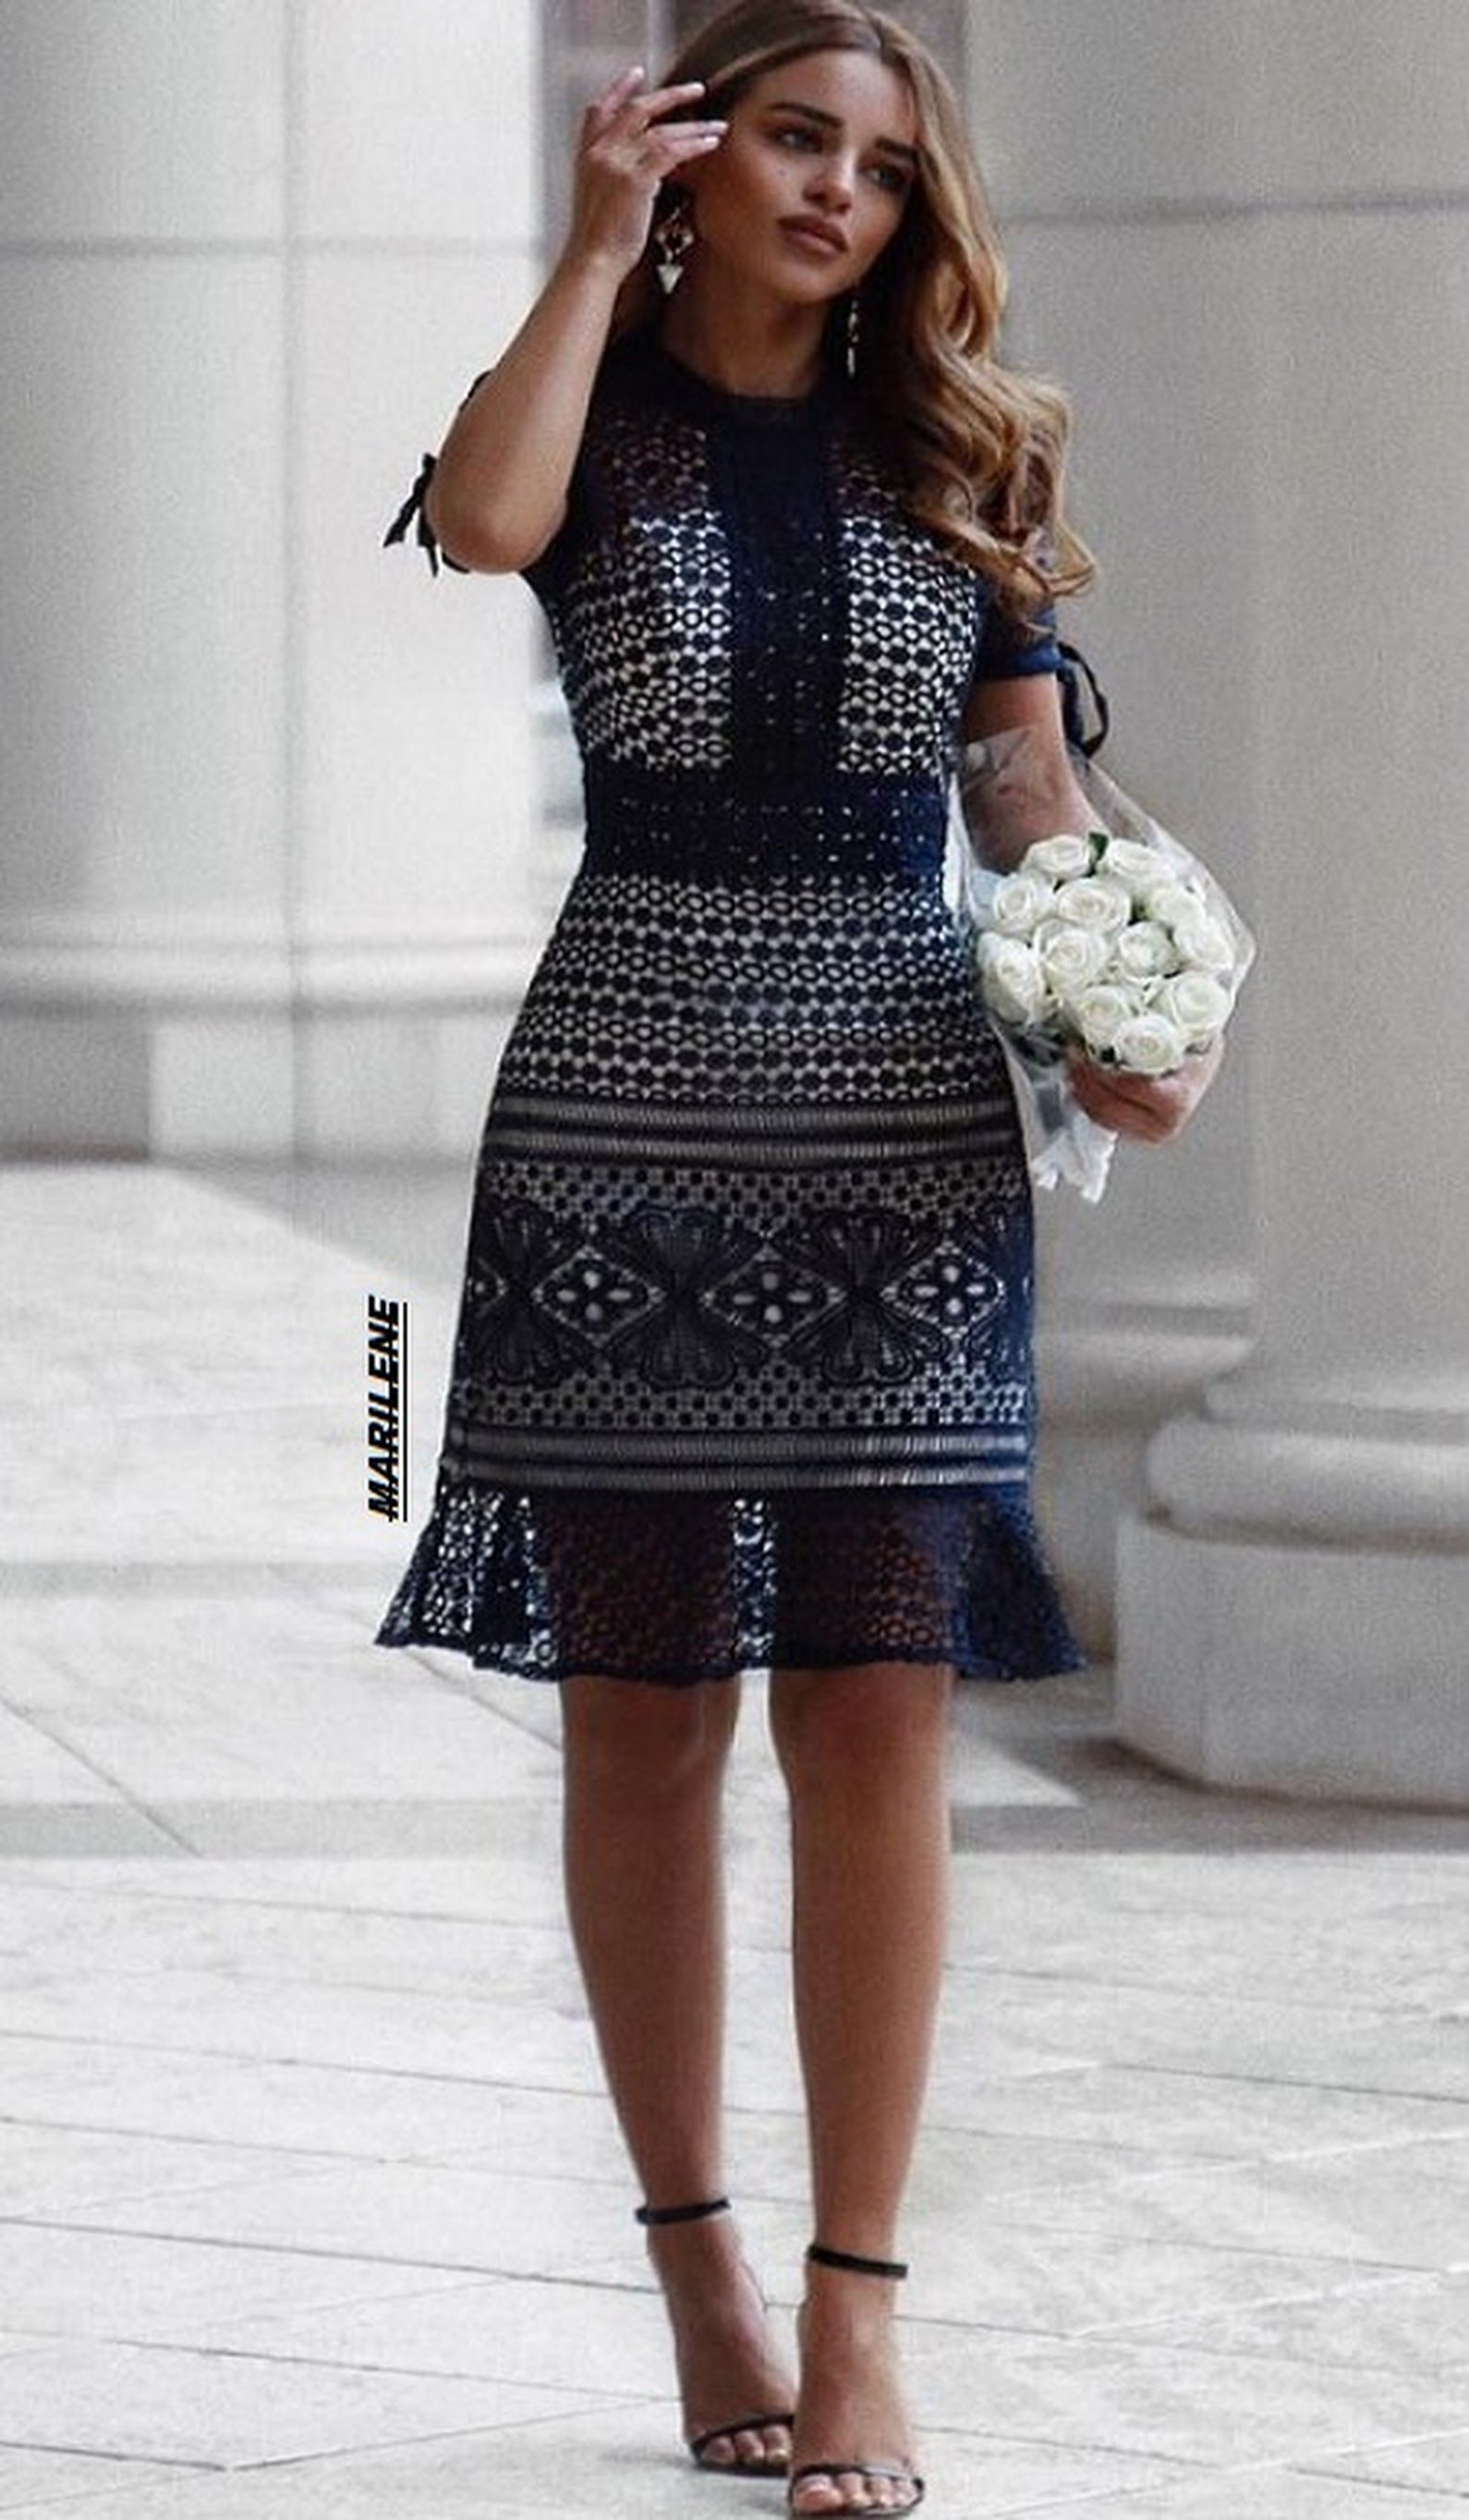 Maxi eve stylish dresses advise dress for on every day in 2019